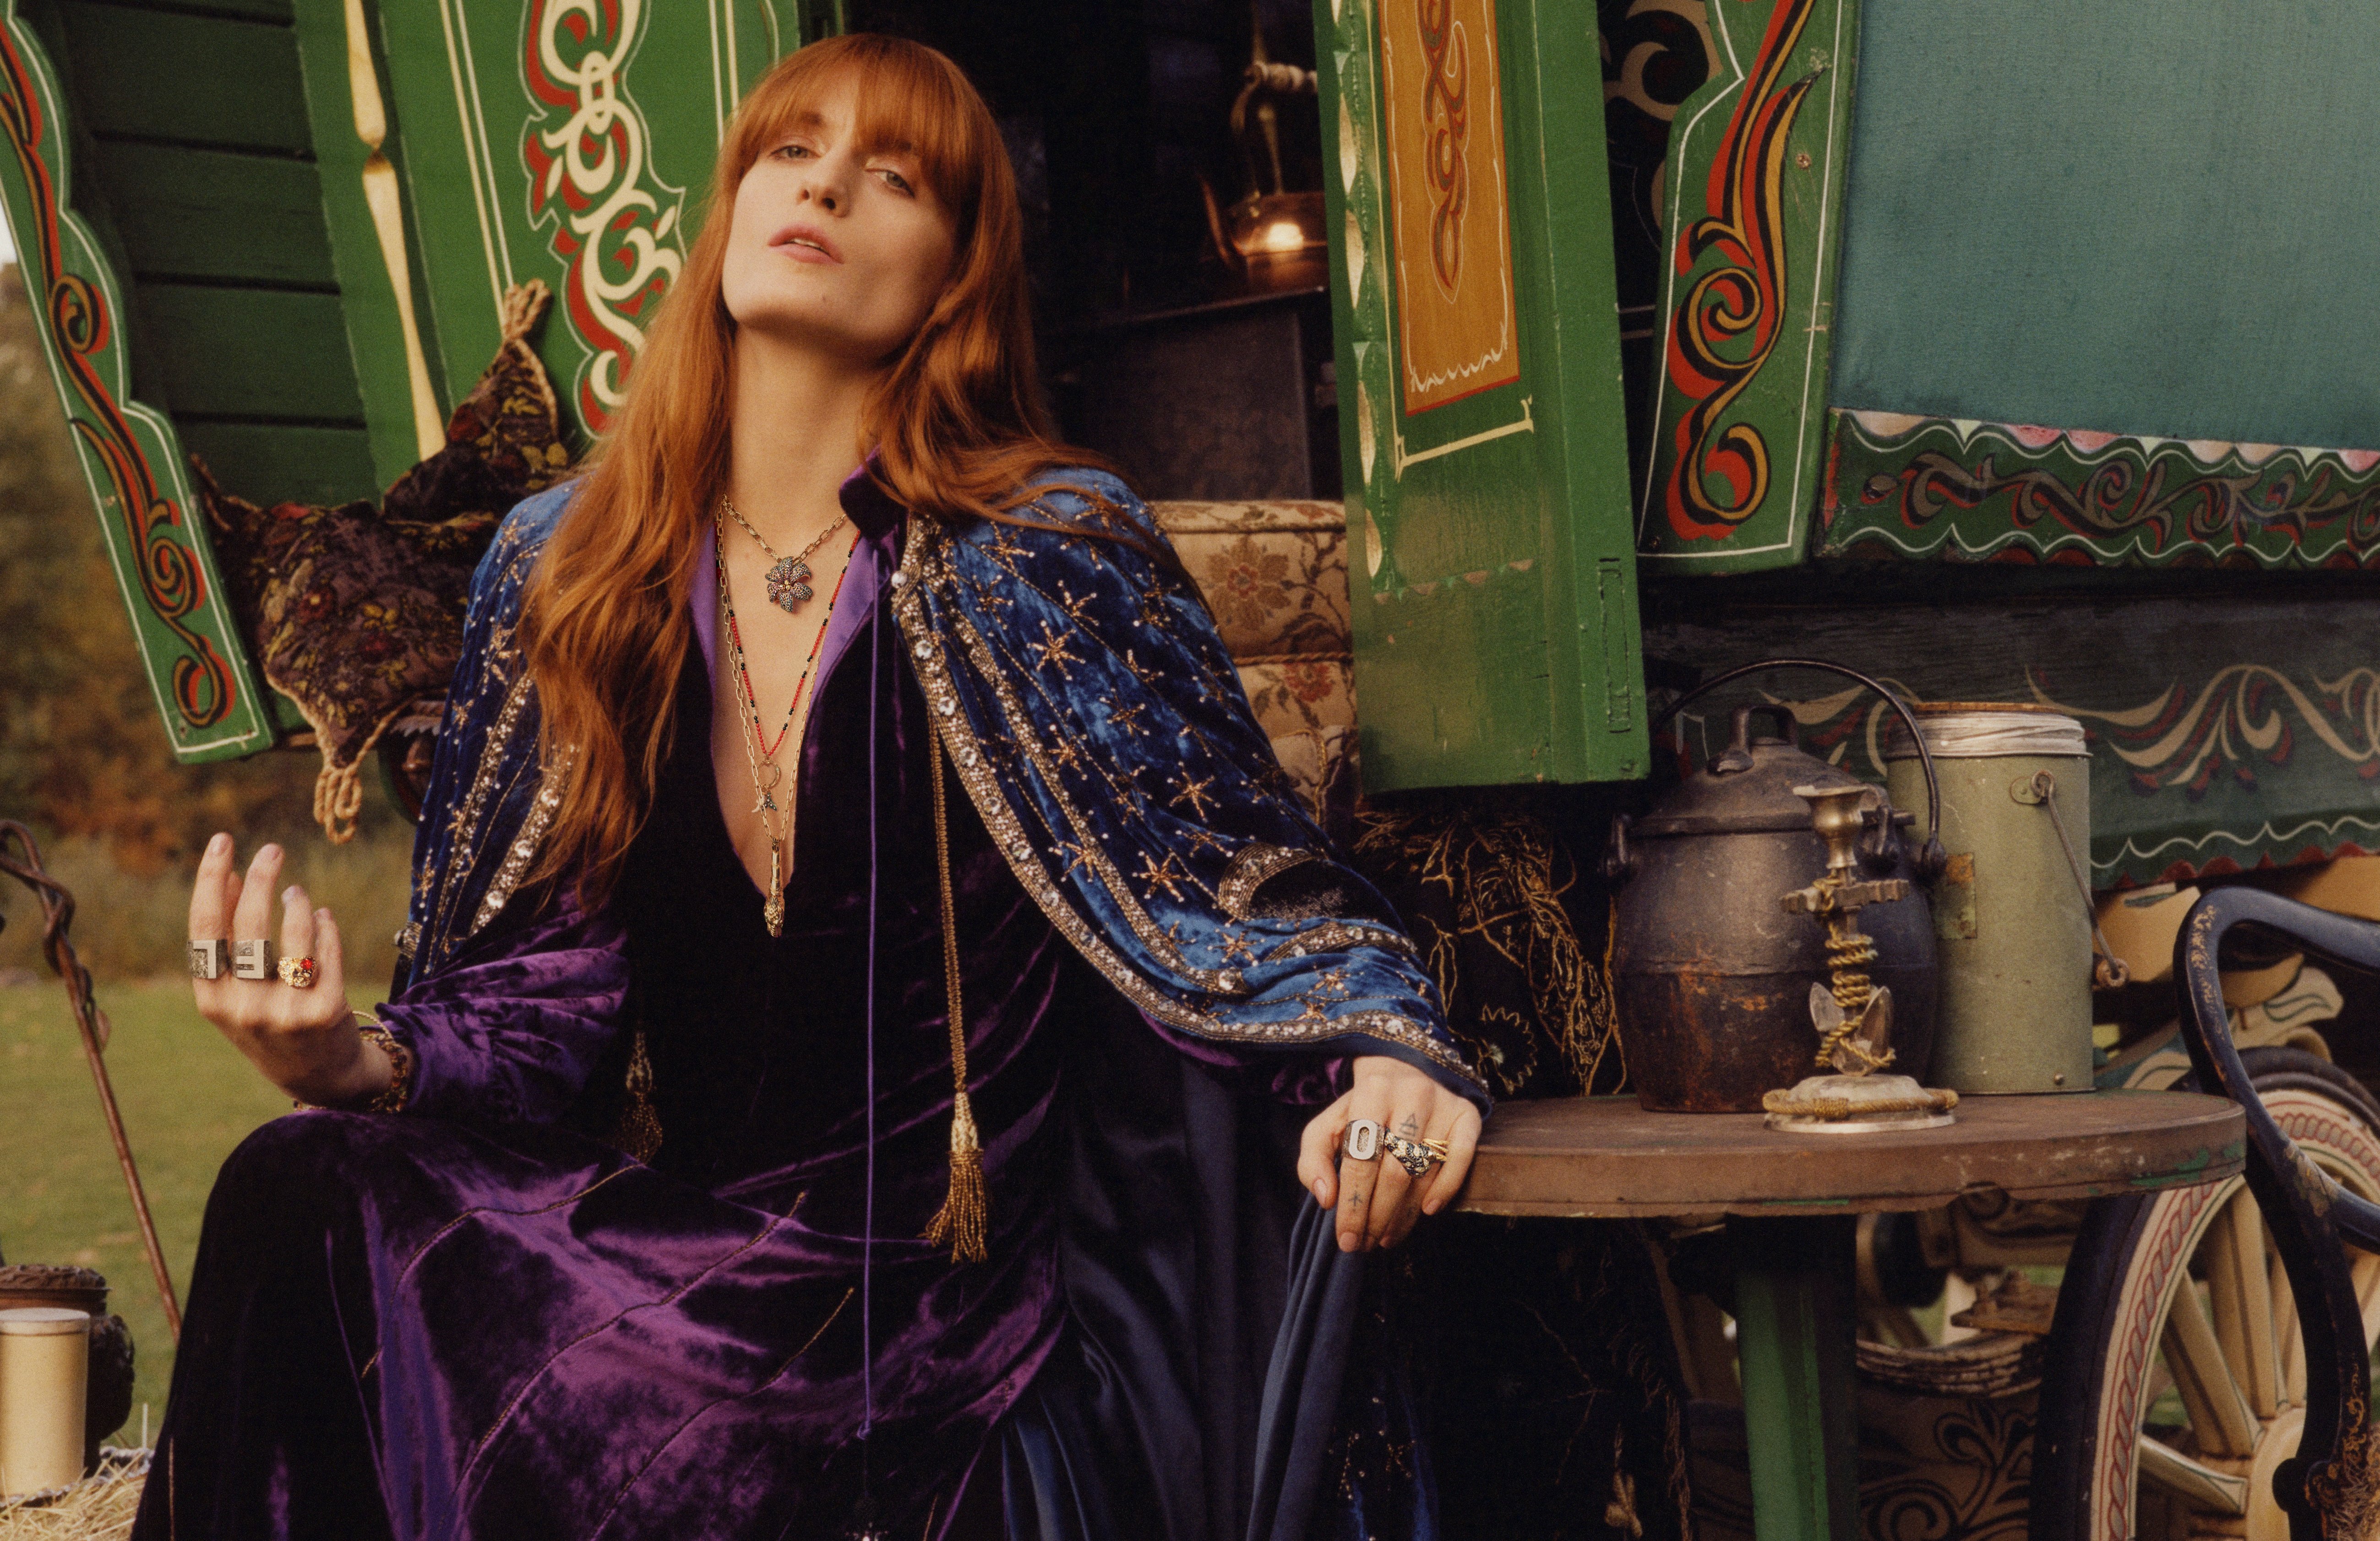 e18c01ed512 Overall the campaign makes us long for a union brokered by Gucci between  Welch and Stevie Nicks.